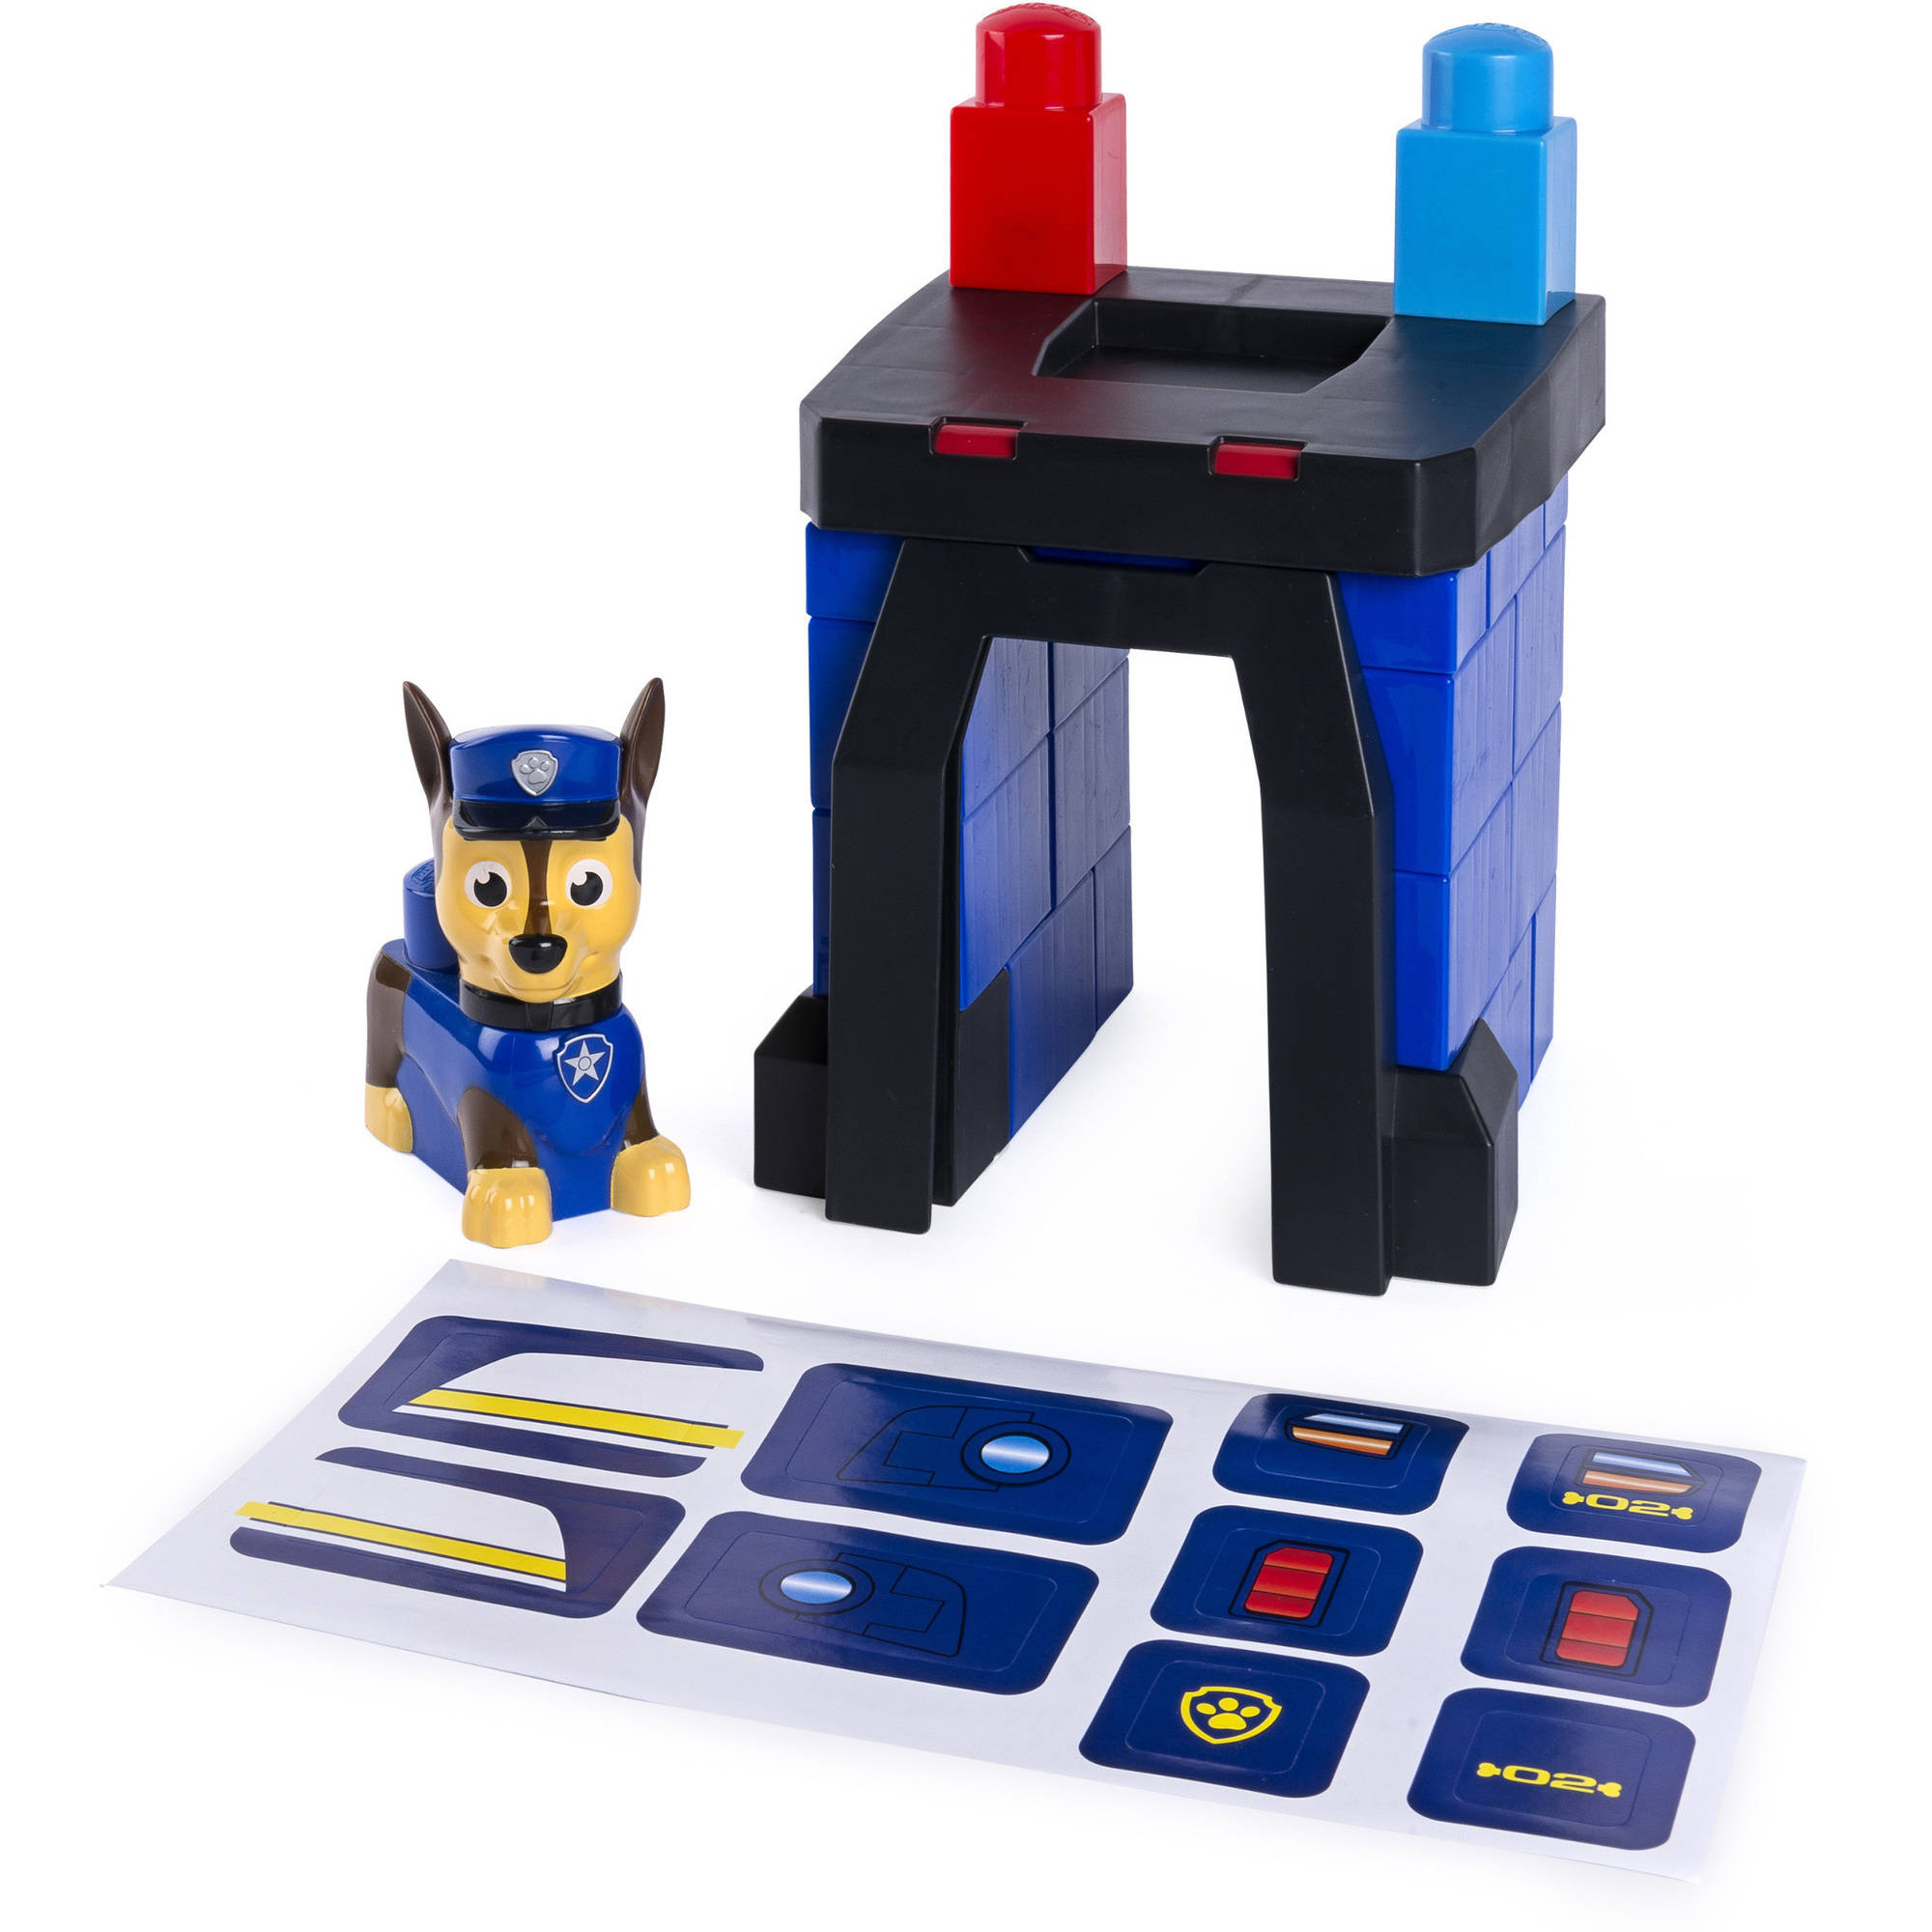 Paw Patrol IONIX Jr. Chase's Pup House Building Block Set by SPIN MASTER TOYS FAR EAST LIMITED